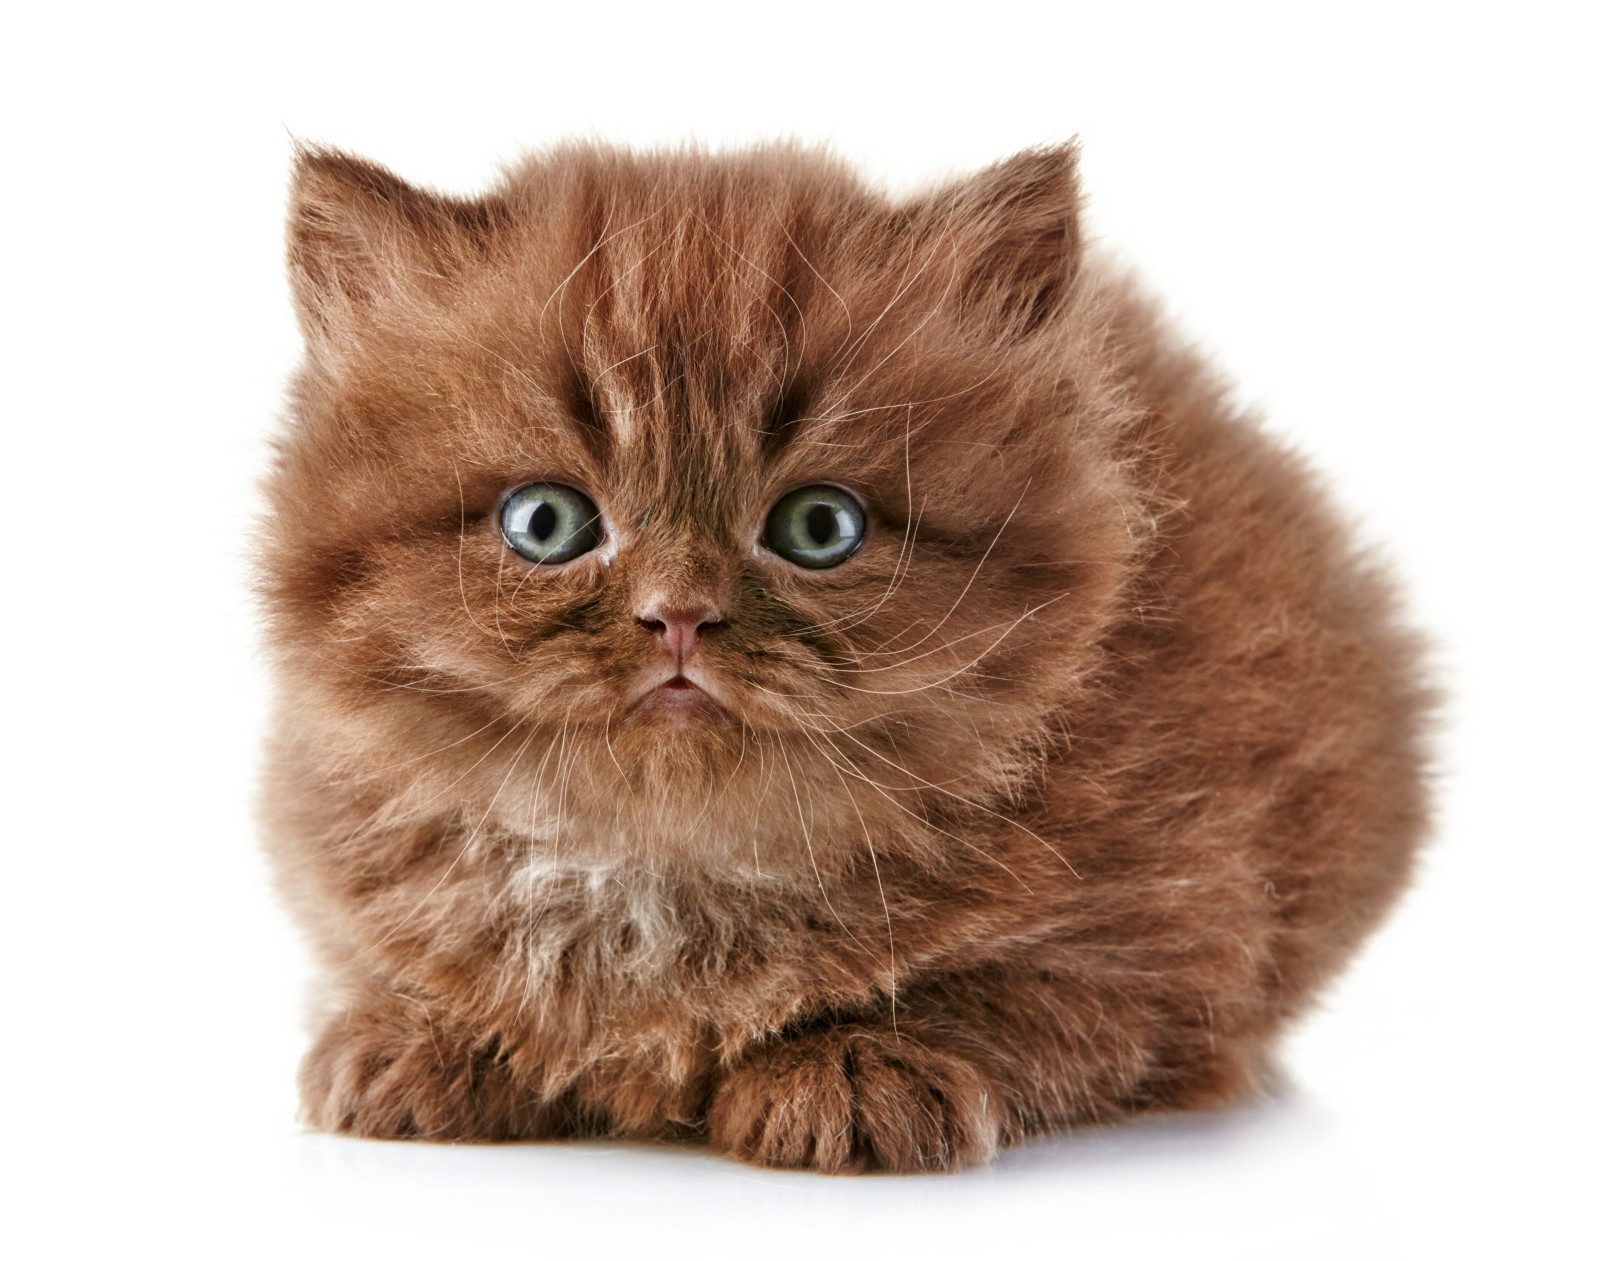 British Semi-longhair Kitten: British Beautiful British Longhair Kitten Breed